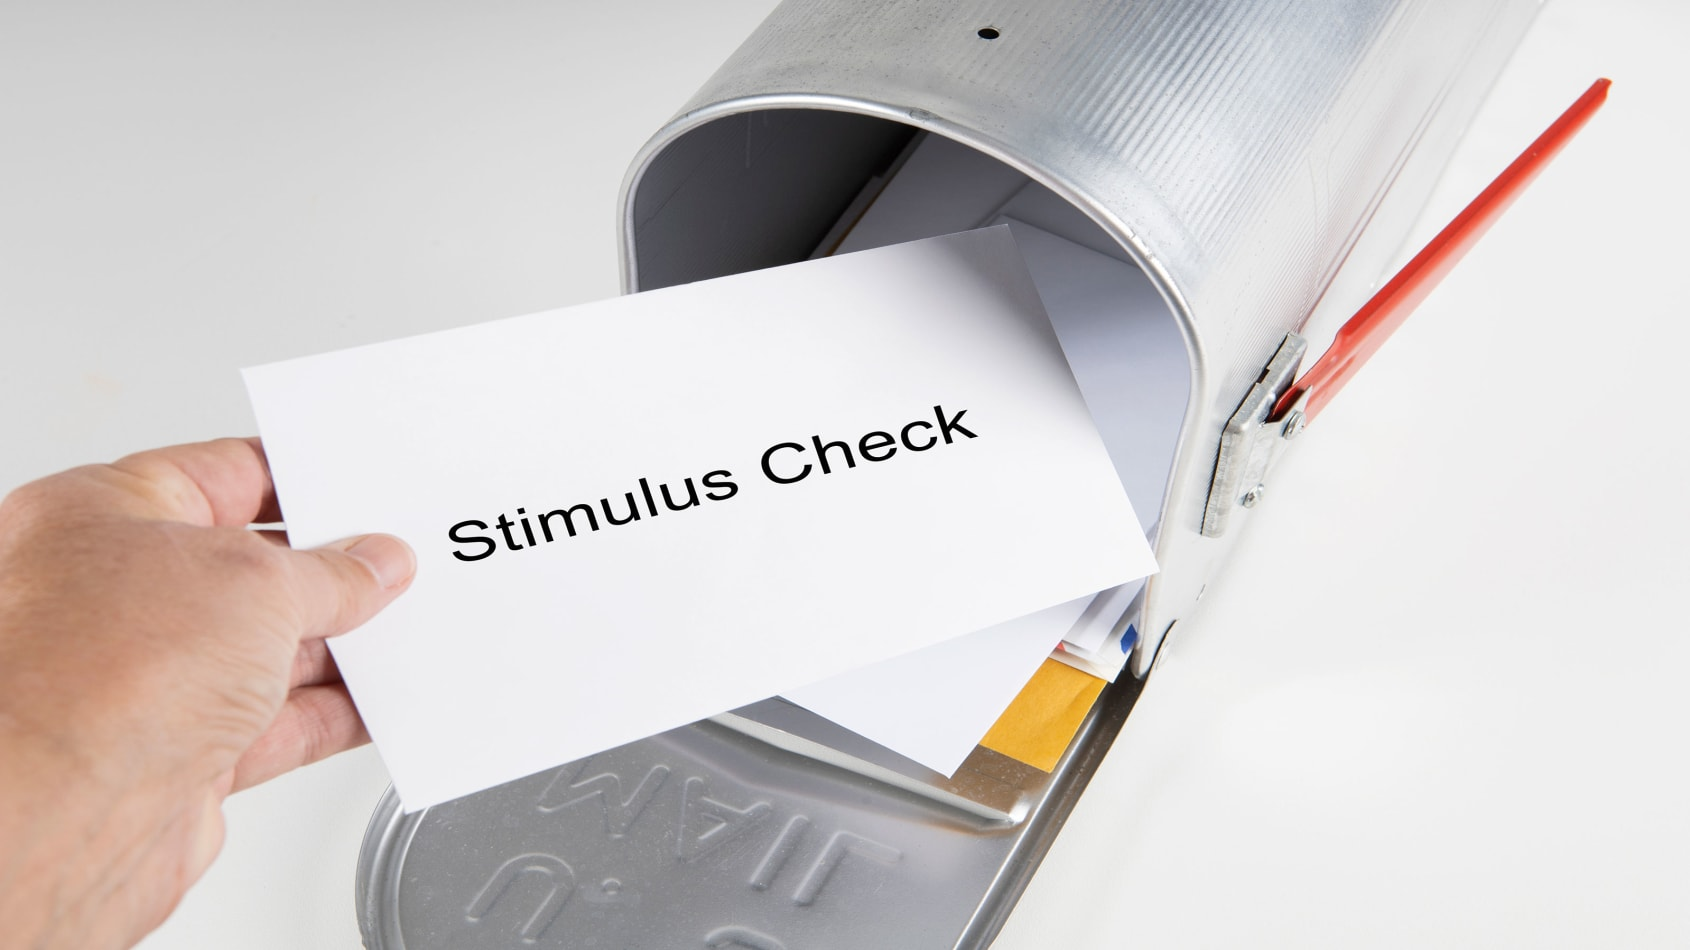 A hand pulling a letter out of a mailbox. The letter is labeled Stimulus Check.